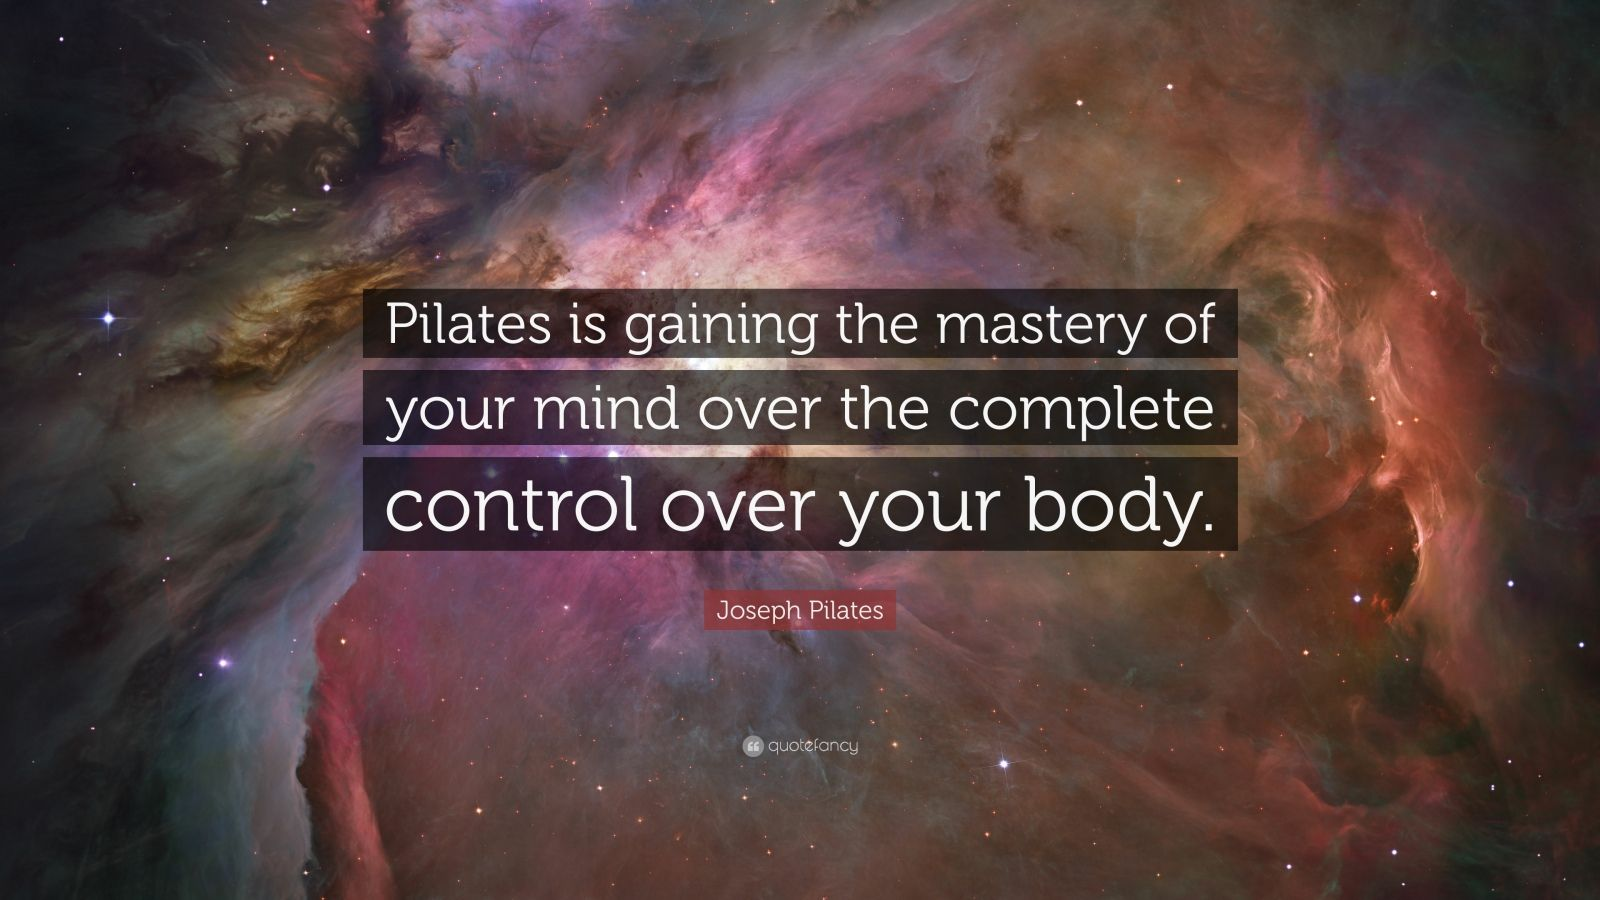 """Joseph Pilates Quote: """"Pilates is gaining the mastery of your mind over the complete control over your body."""""""